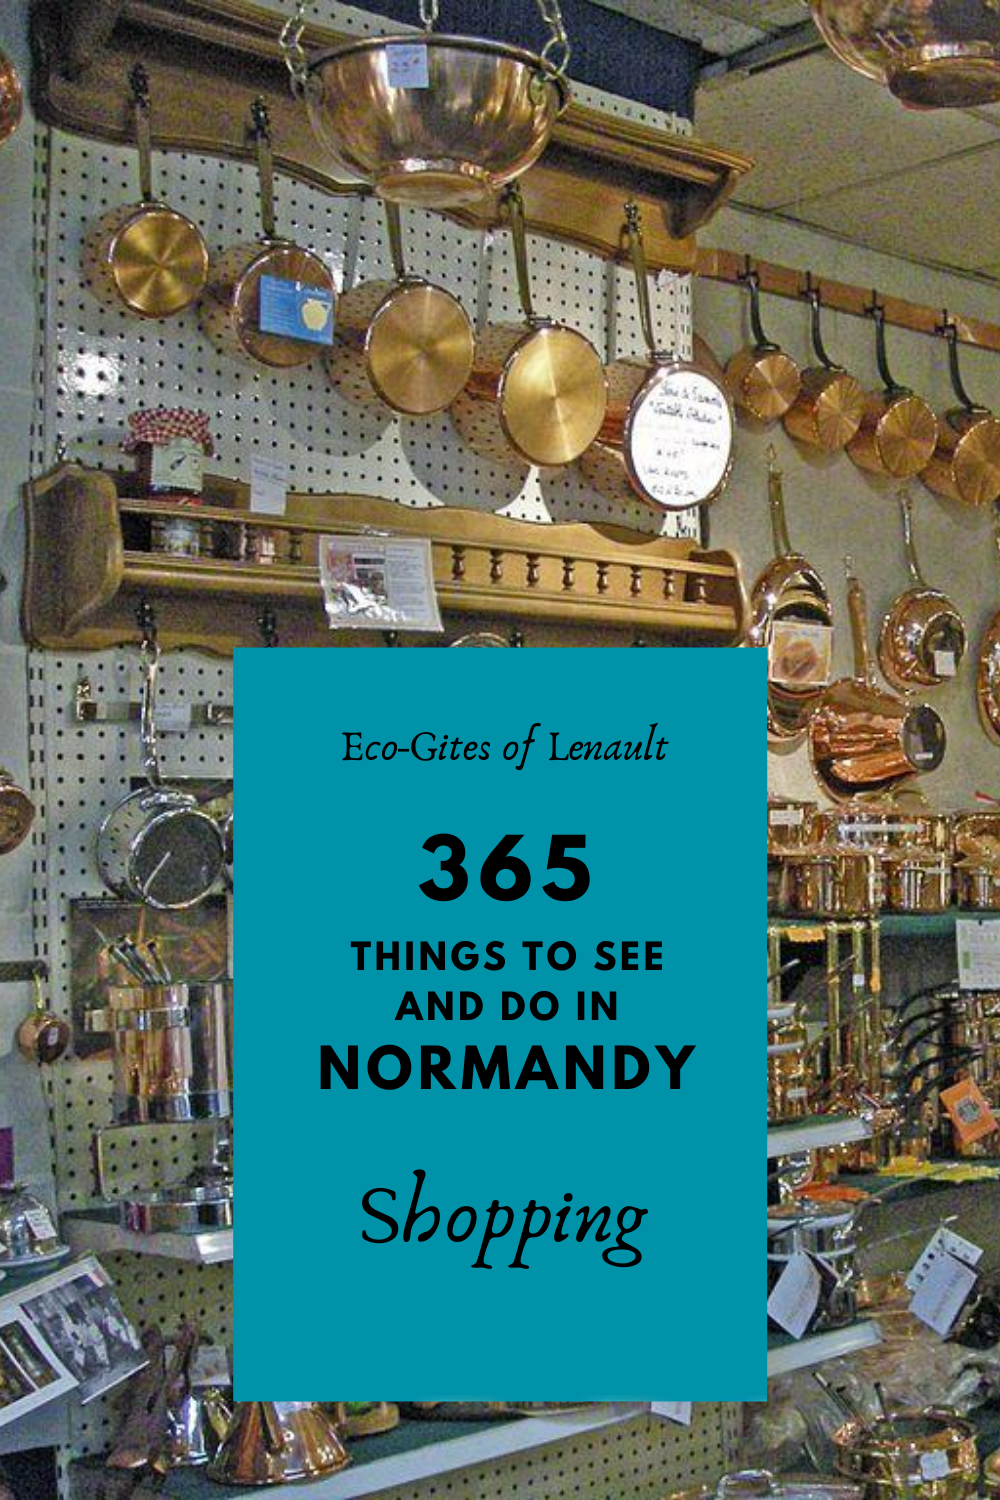 Shopping in Normandy, France